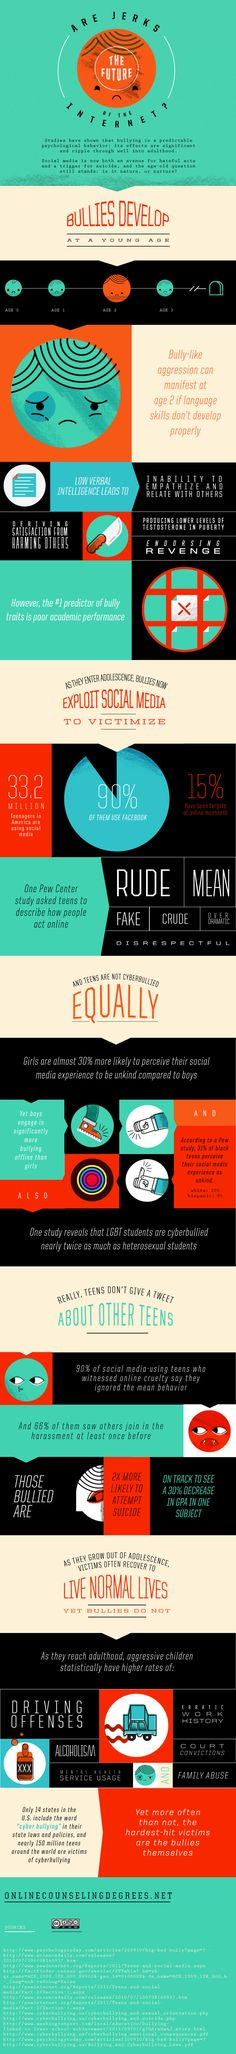 Digital Etiquette: Do Cyberbullies Grow Up To Become Social Media Self-Righteous Jerks? #SMSRJ #infographic #highered